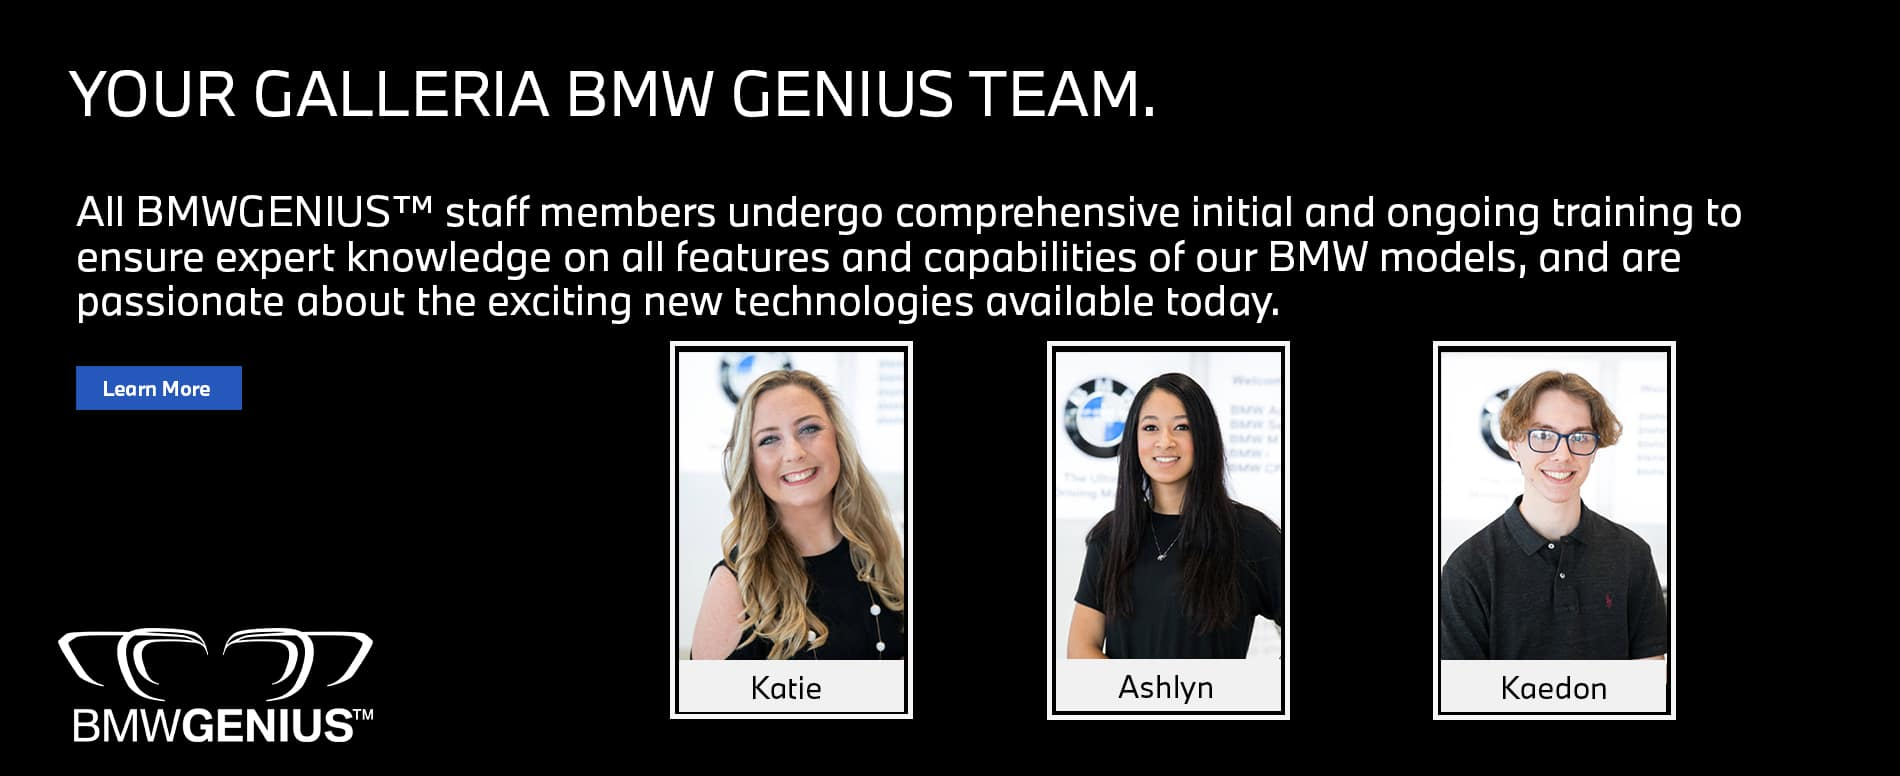 BMW-GENIUS-AT-GALLERIA-BMW-CLICK-TO-LEARN-MORE